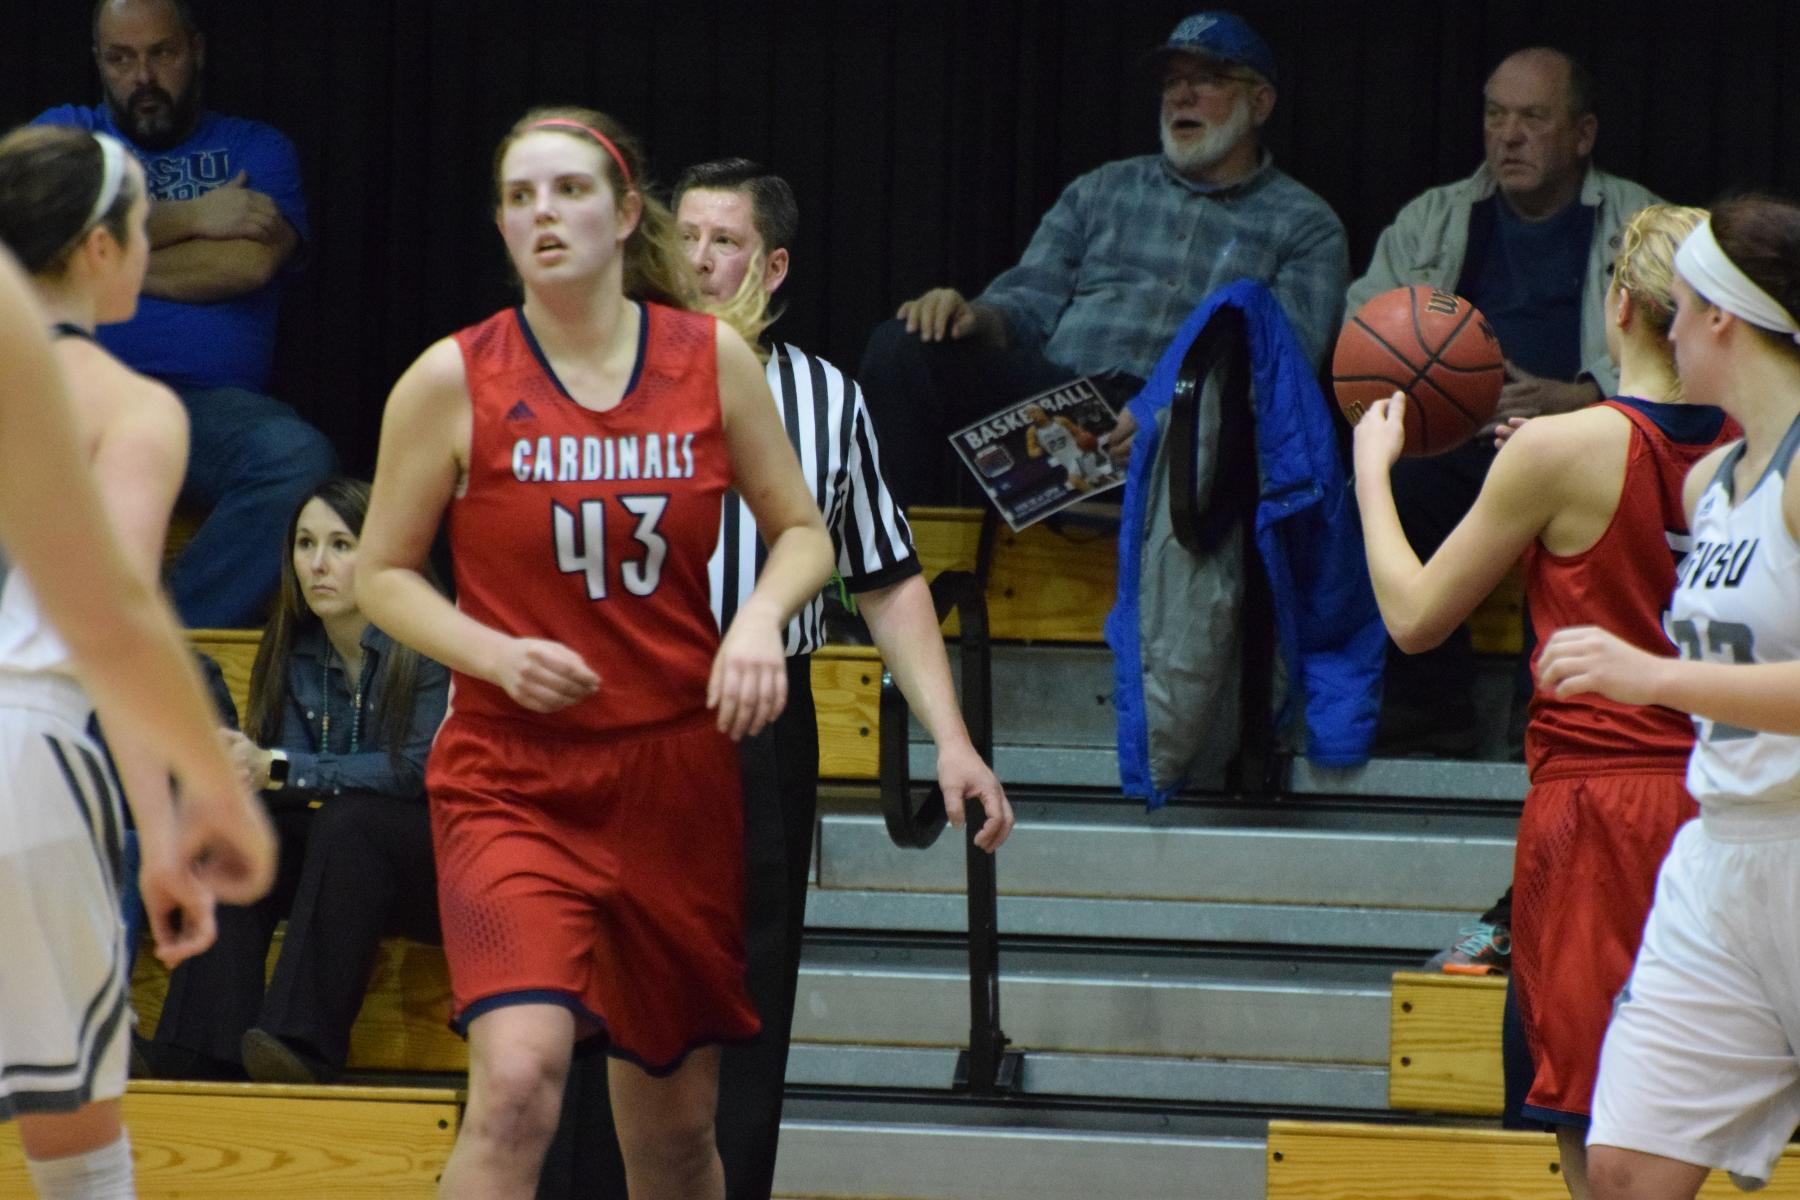 Women's Basketball at Grand Valley - February 18. 2016 - Saginaw Valley State